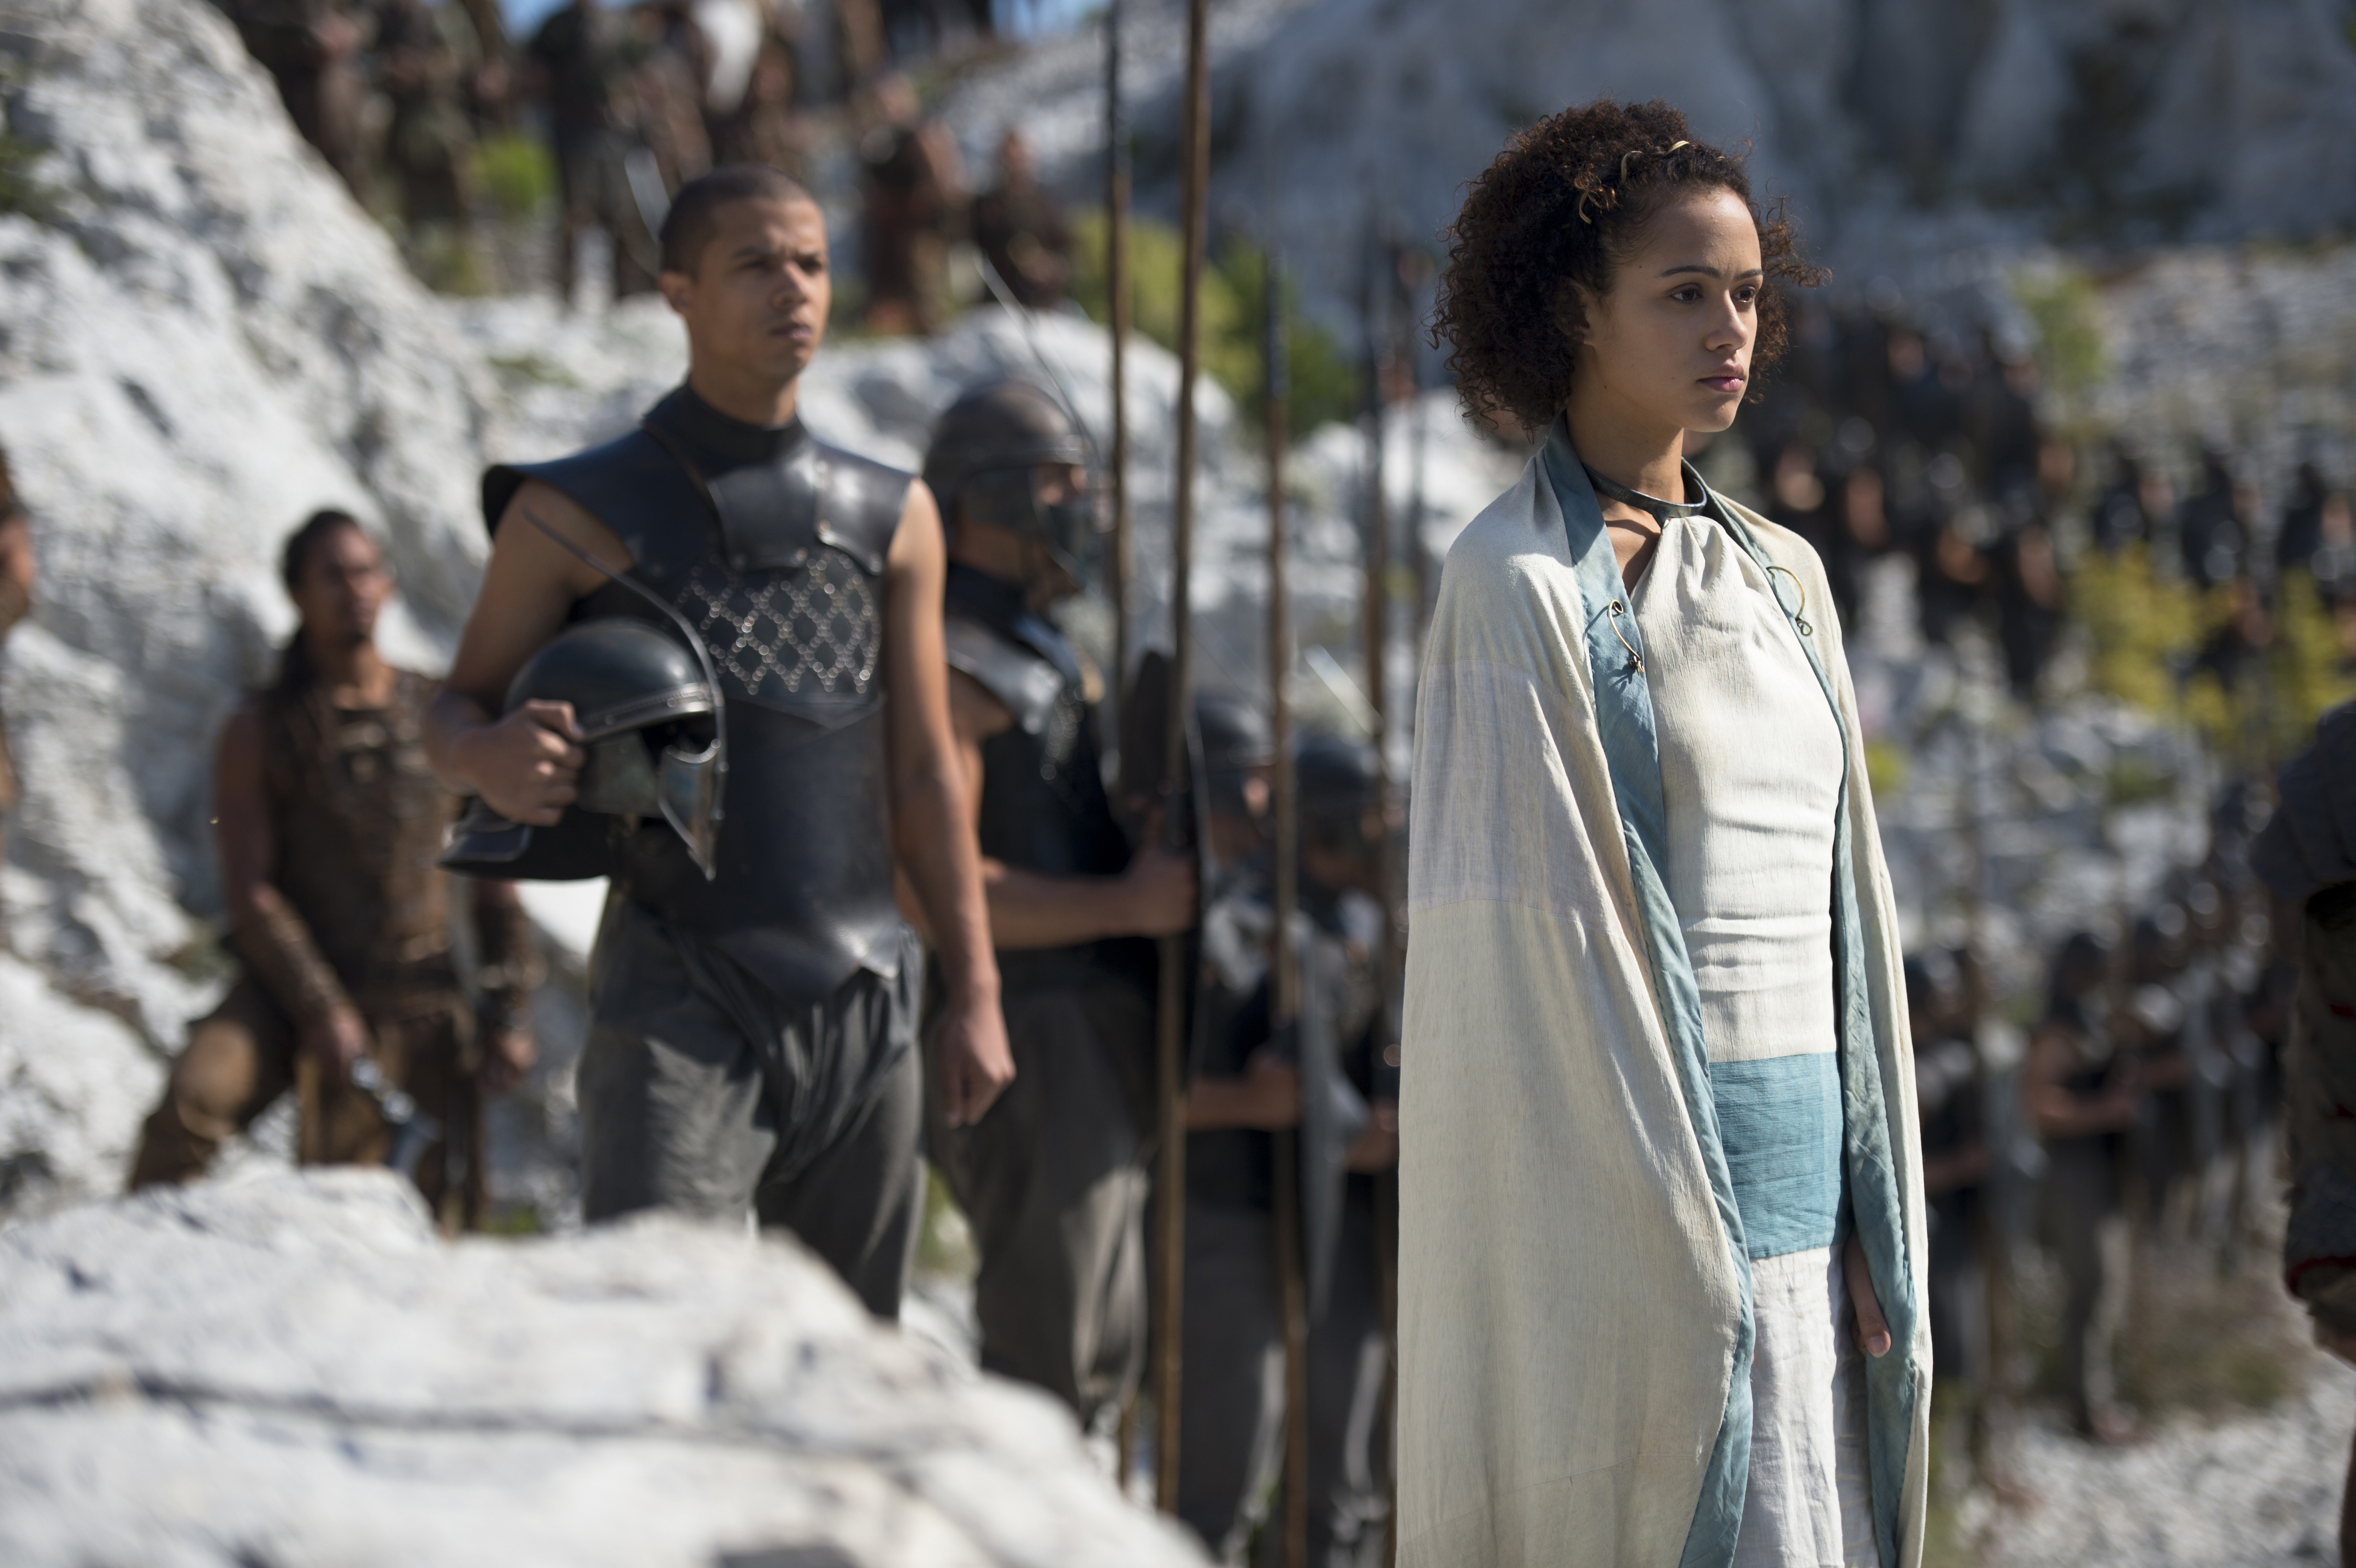 20 New Images From 'Game of Thrones' Season 4 | We Geek Girls